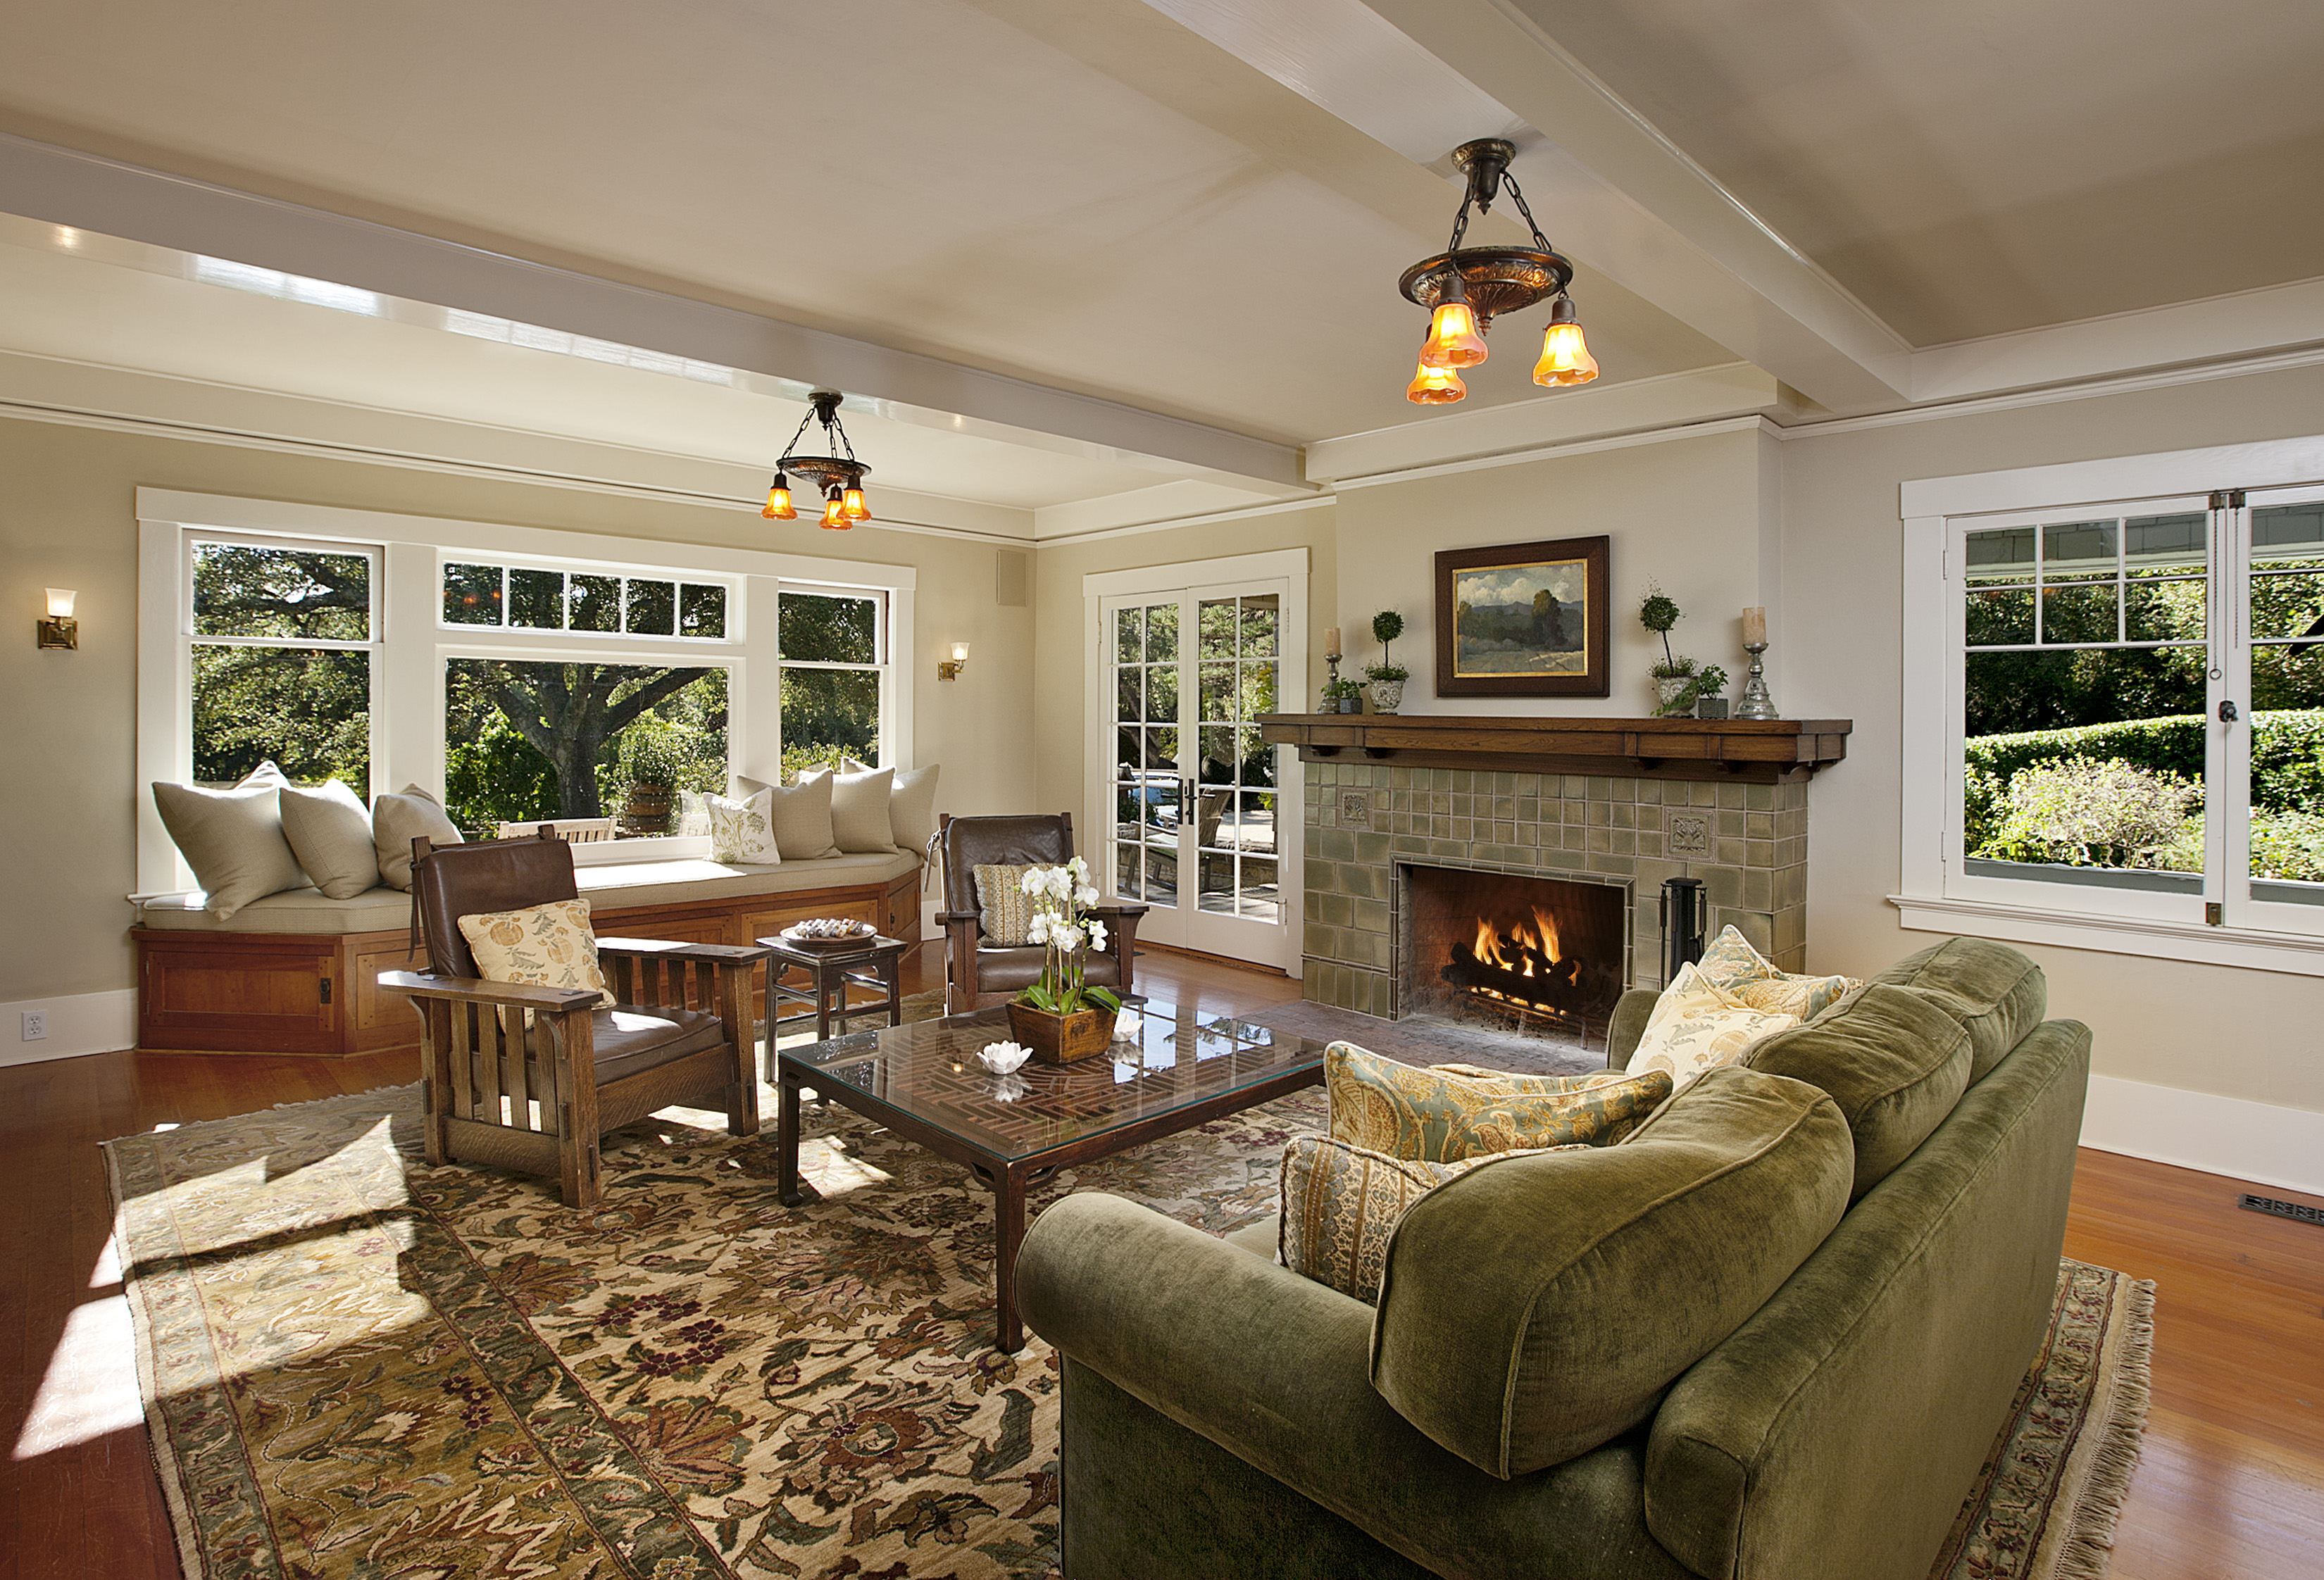 Craftsman home interior design interior decorating las vegas Craftsman home interior